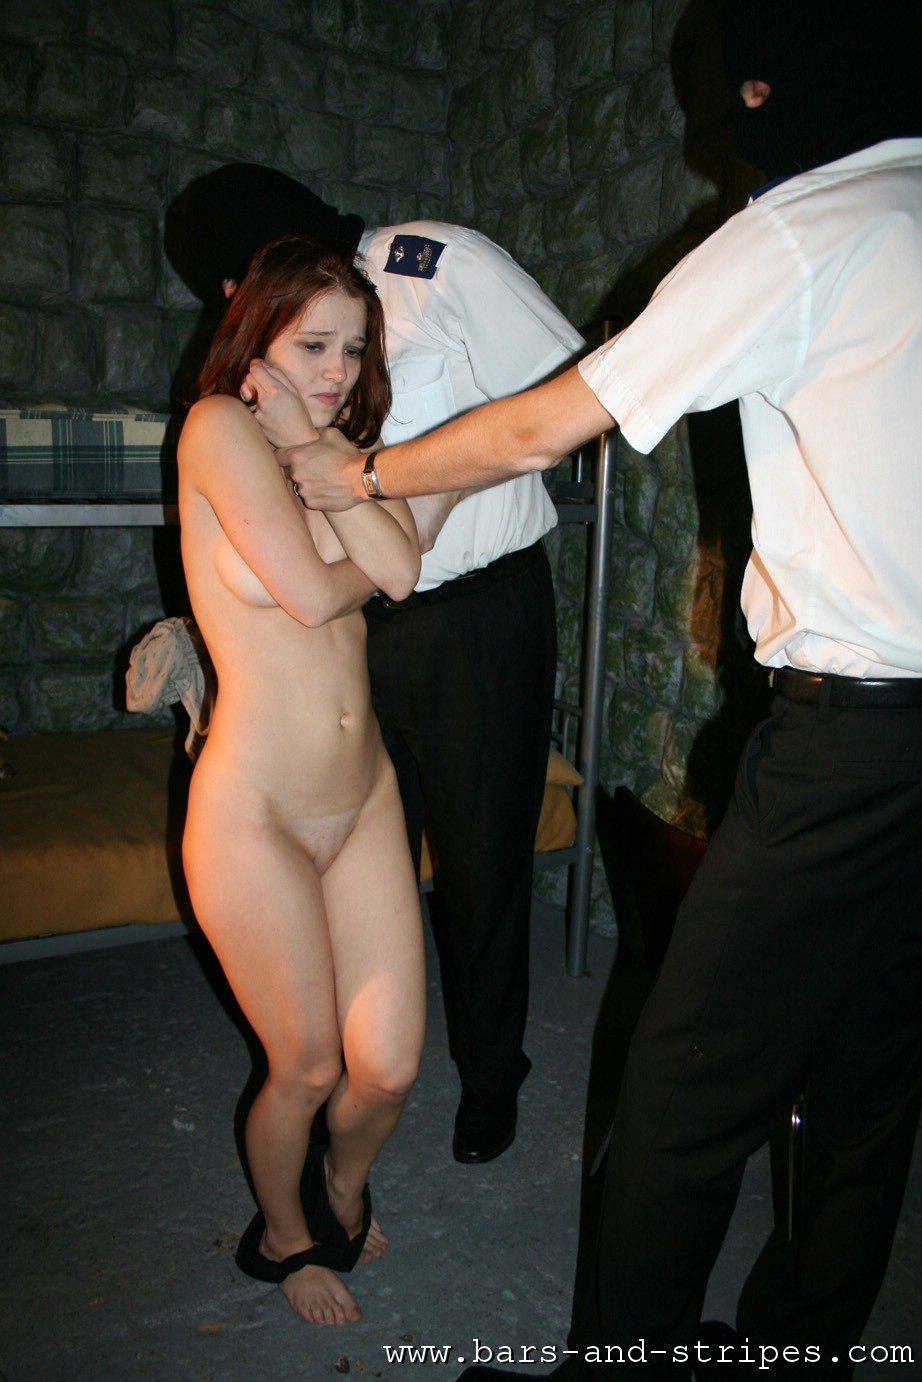 Naked Images girl gets stripped nude at bar